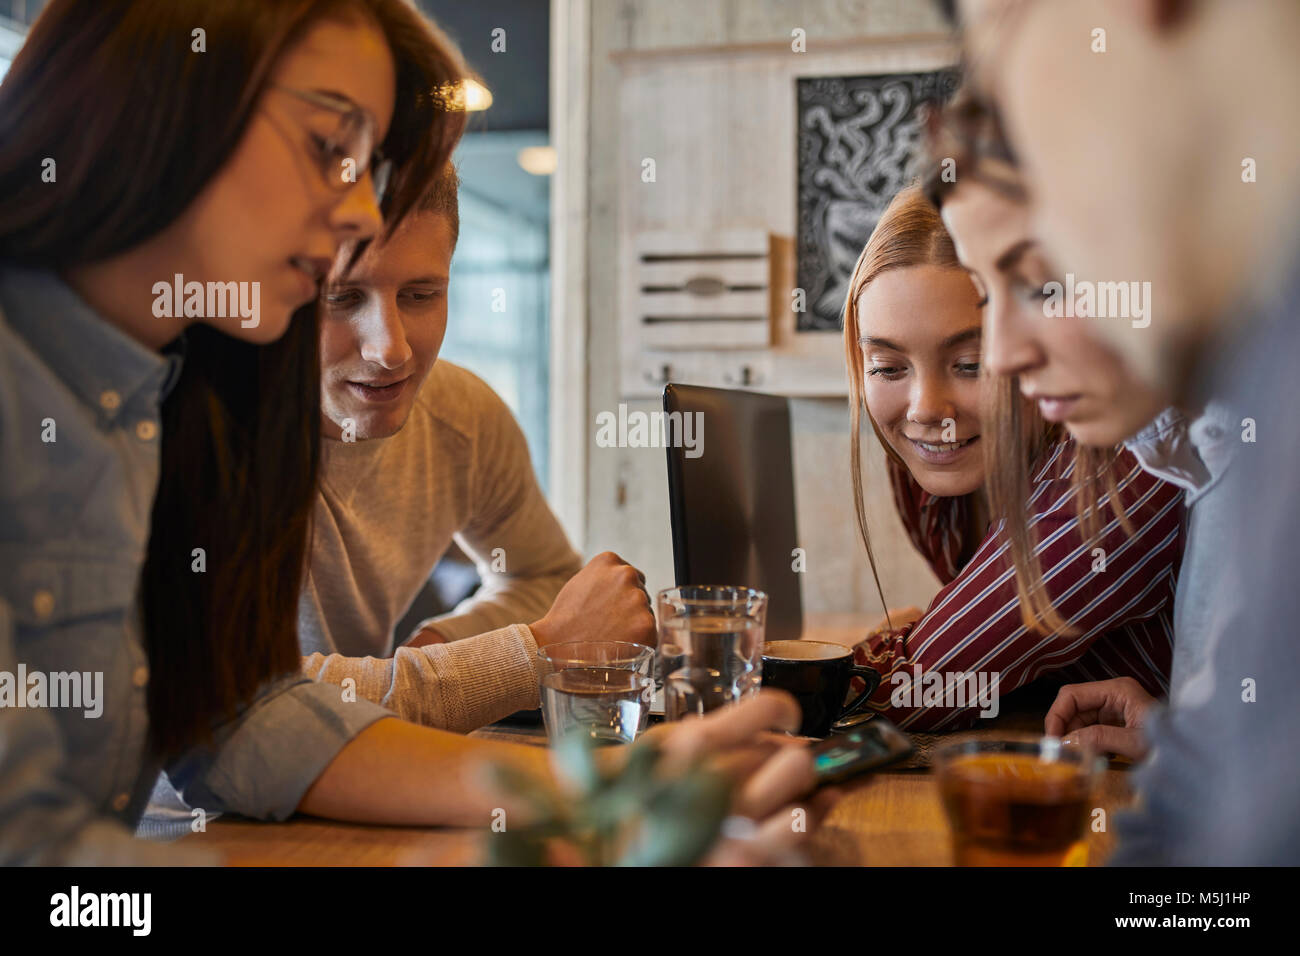 Group of friends sitting together in a cafe sharing smartphone - Stock Image